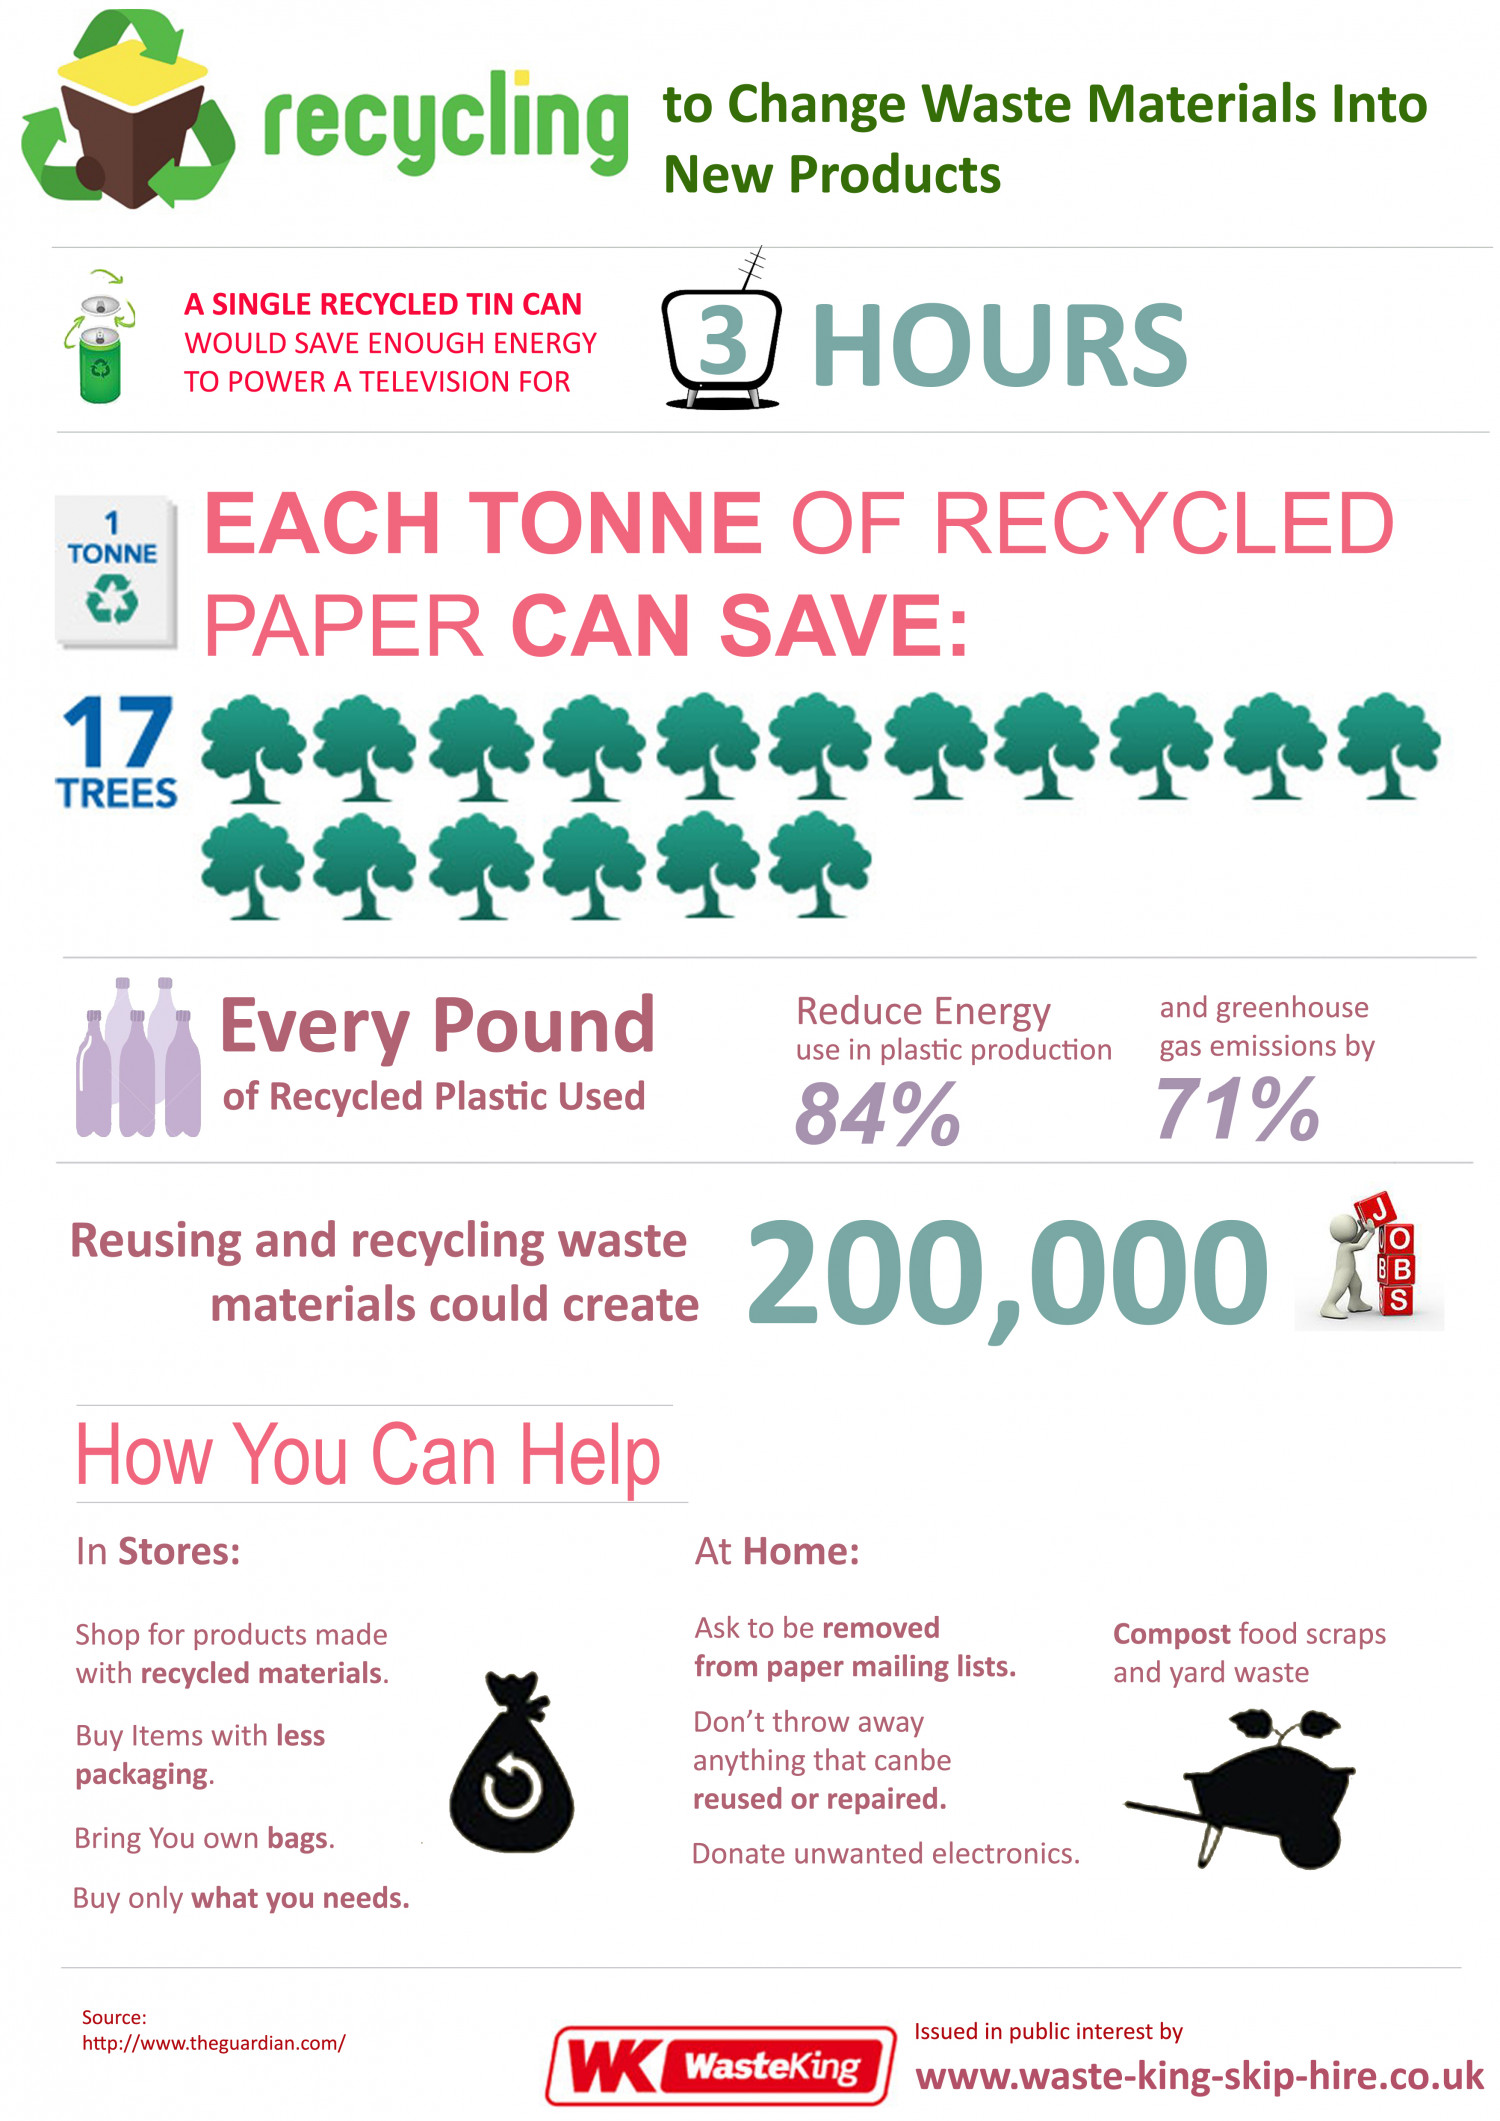 Recycling to Change Waste Materials Into New Products Infographic